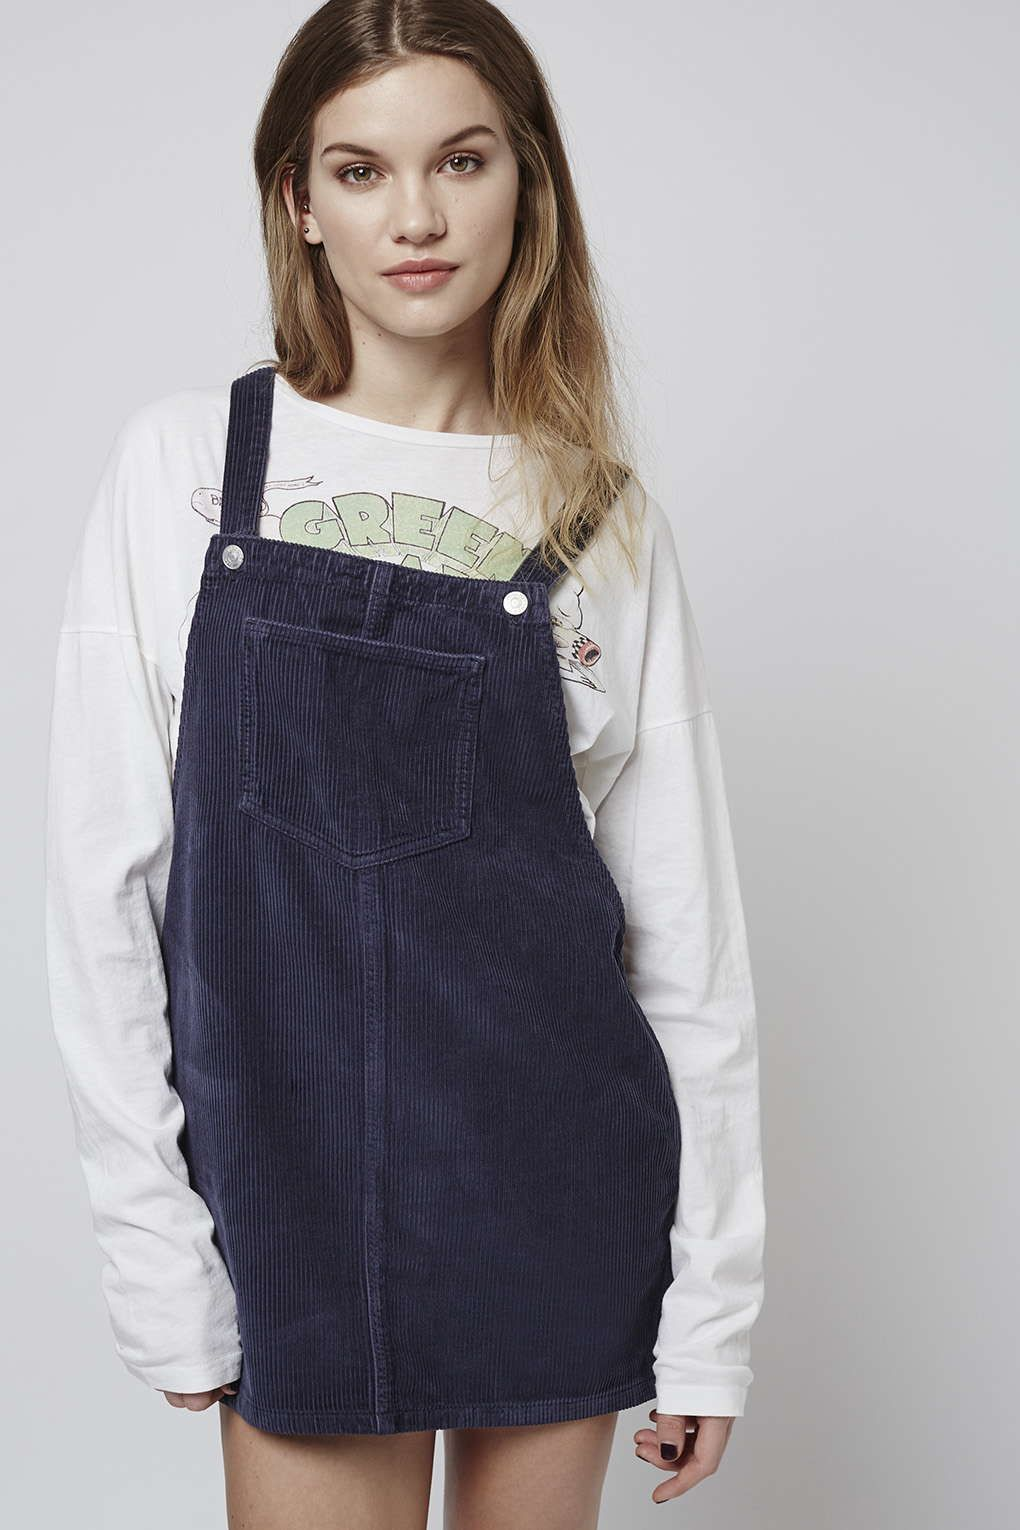 0a305f0e70242 Opt for an alternative to denim with this MOTO cord pinafore dress. In a  clean, textured finish, there's a distinctive '70s edge to this throw-on  style.